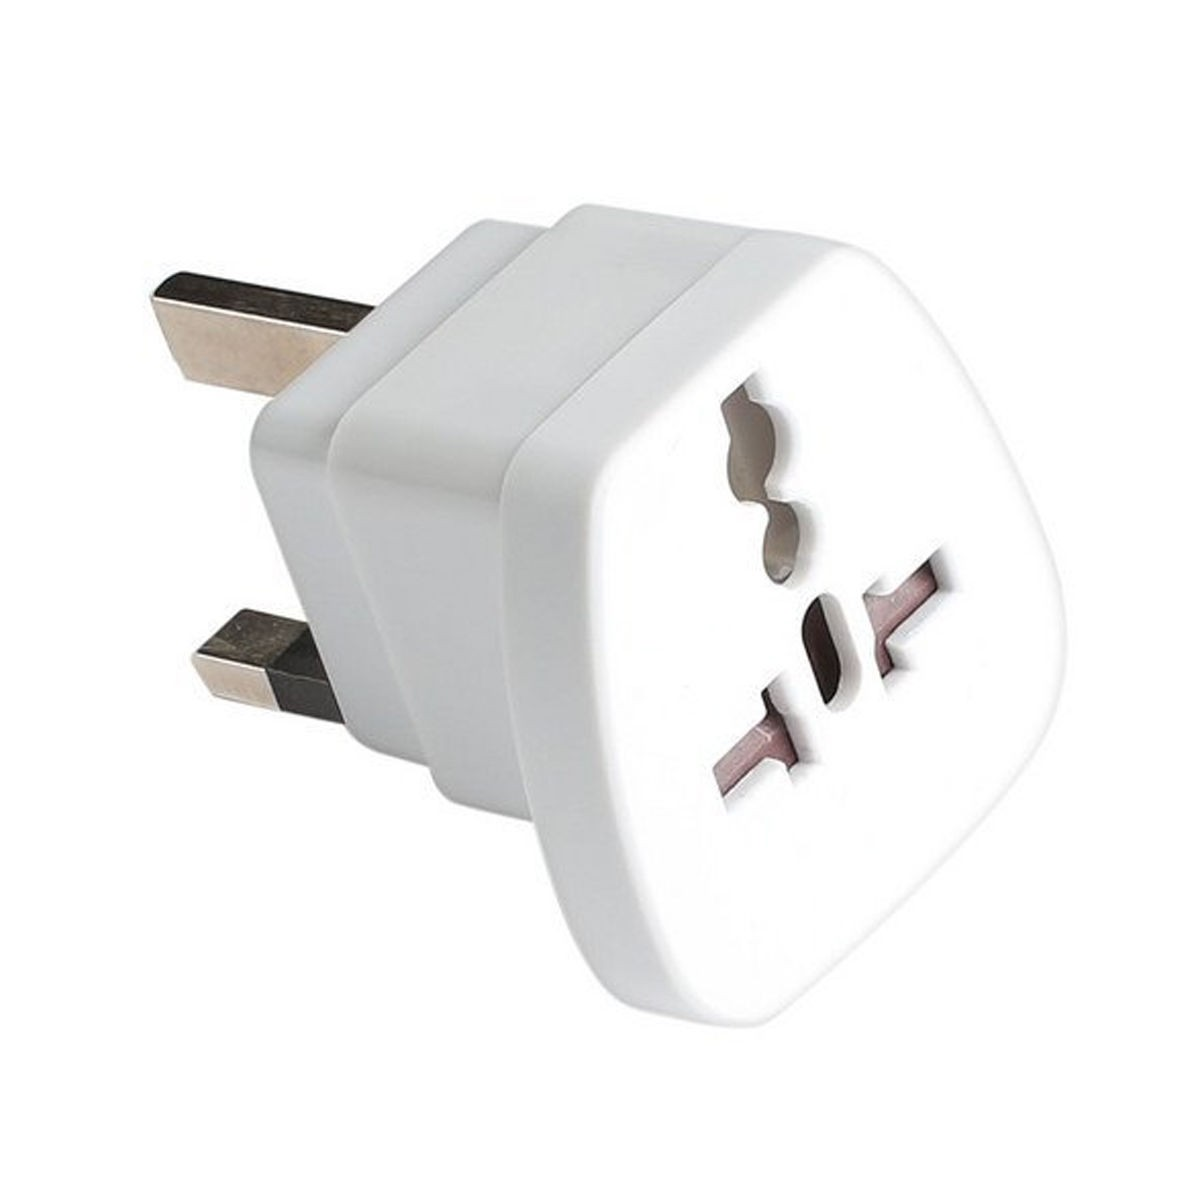 Travel Adapter Eu To Uk Hahnel Eu Us Aus To Uk Power Travel Adapter Converter Plug 13a Fused White